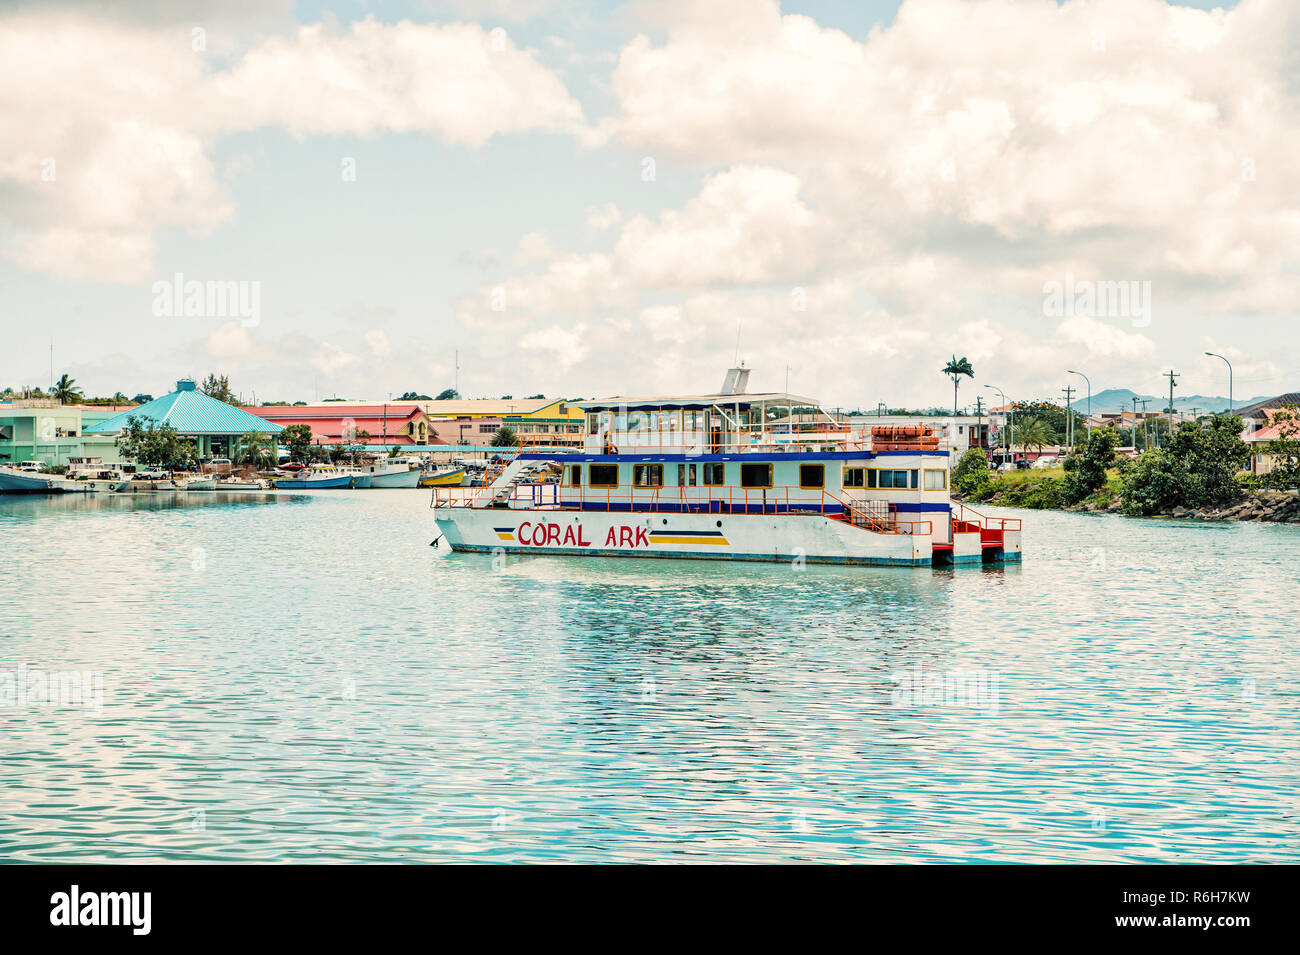 St. John, Antigua - March 05, 2016: excursion boat, white passenger ship, Coral Ark touristic vehicle at moorage in sea port, bay with motorboats on water summer day on blue cloudy sky - Stock Image